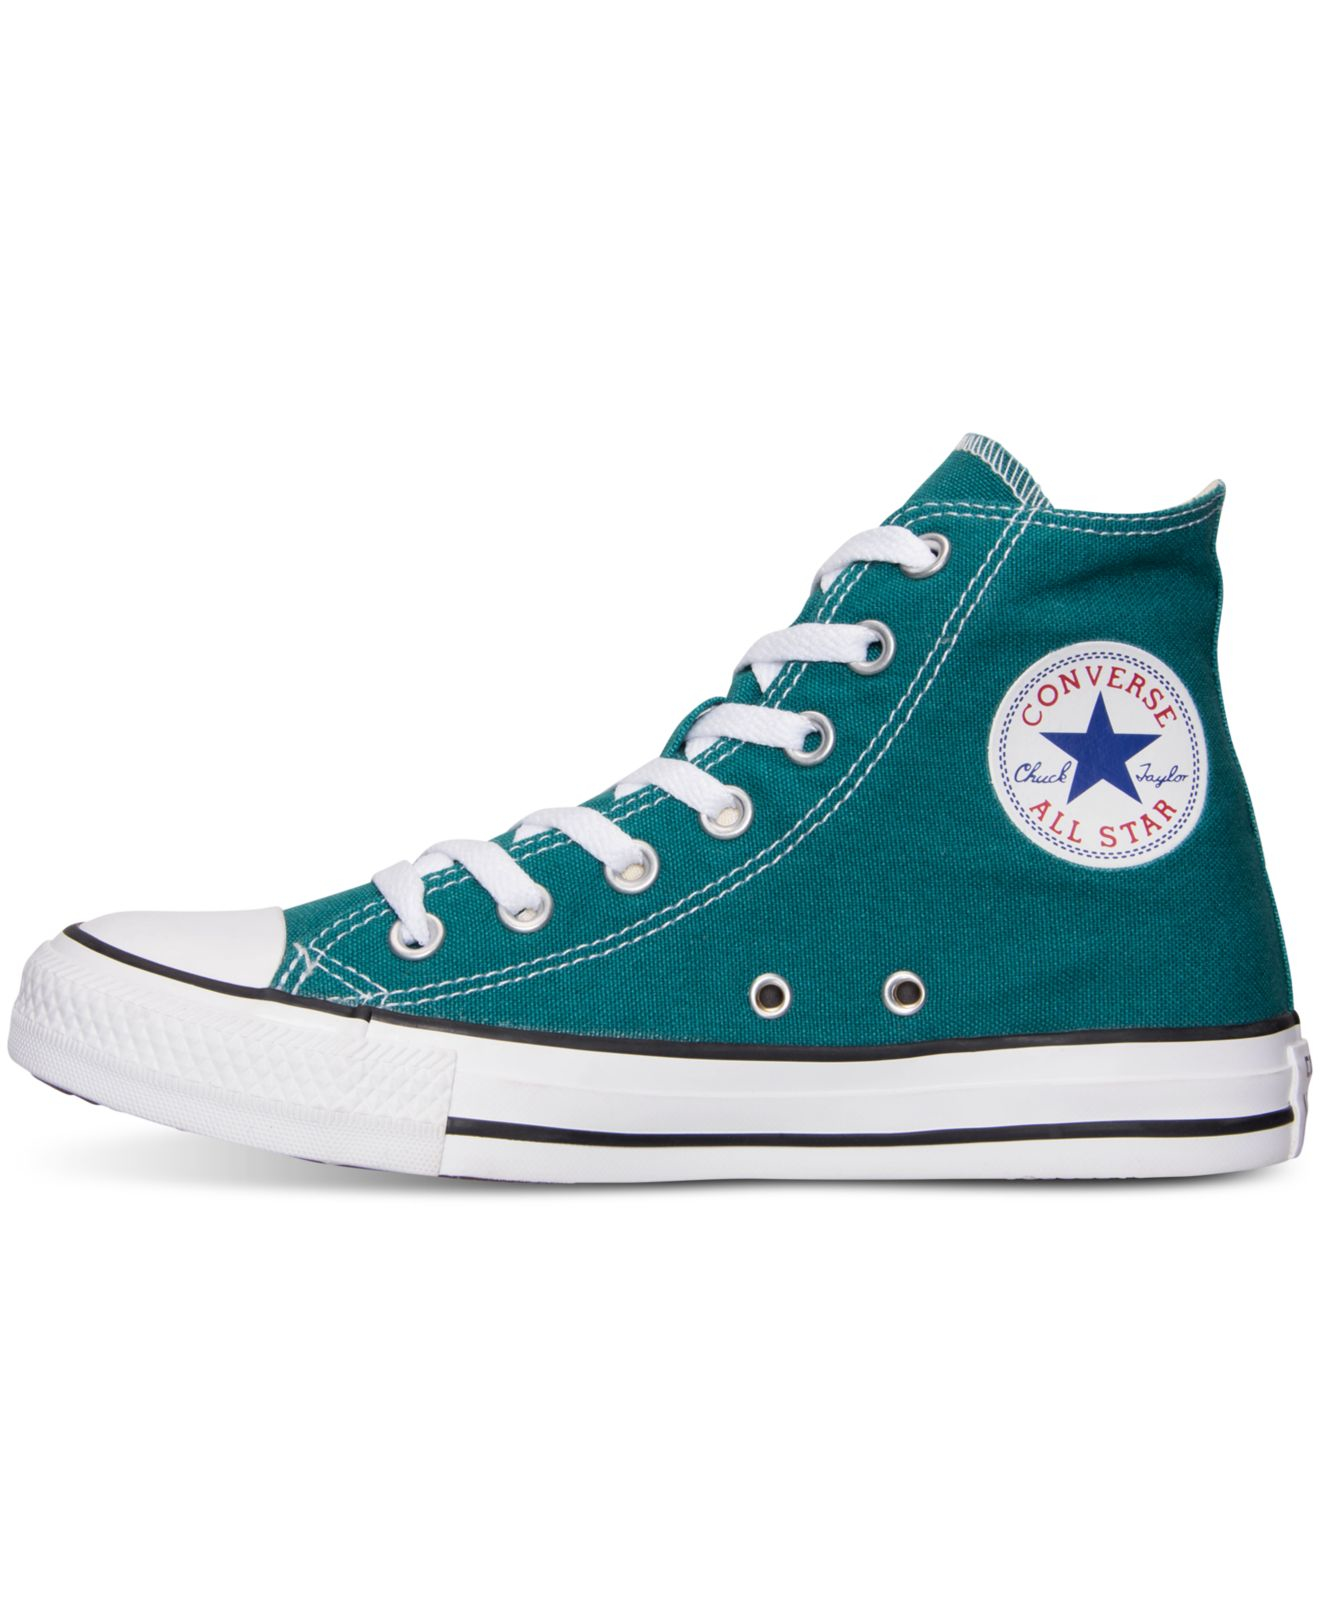 0c16ec3a2a ... best lyst converse womens chuck taylor hi casual sneakers from finish  b046a 1240d authentic mens ...